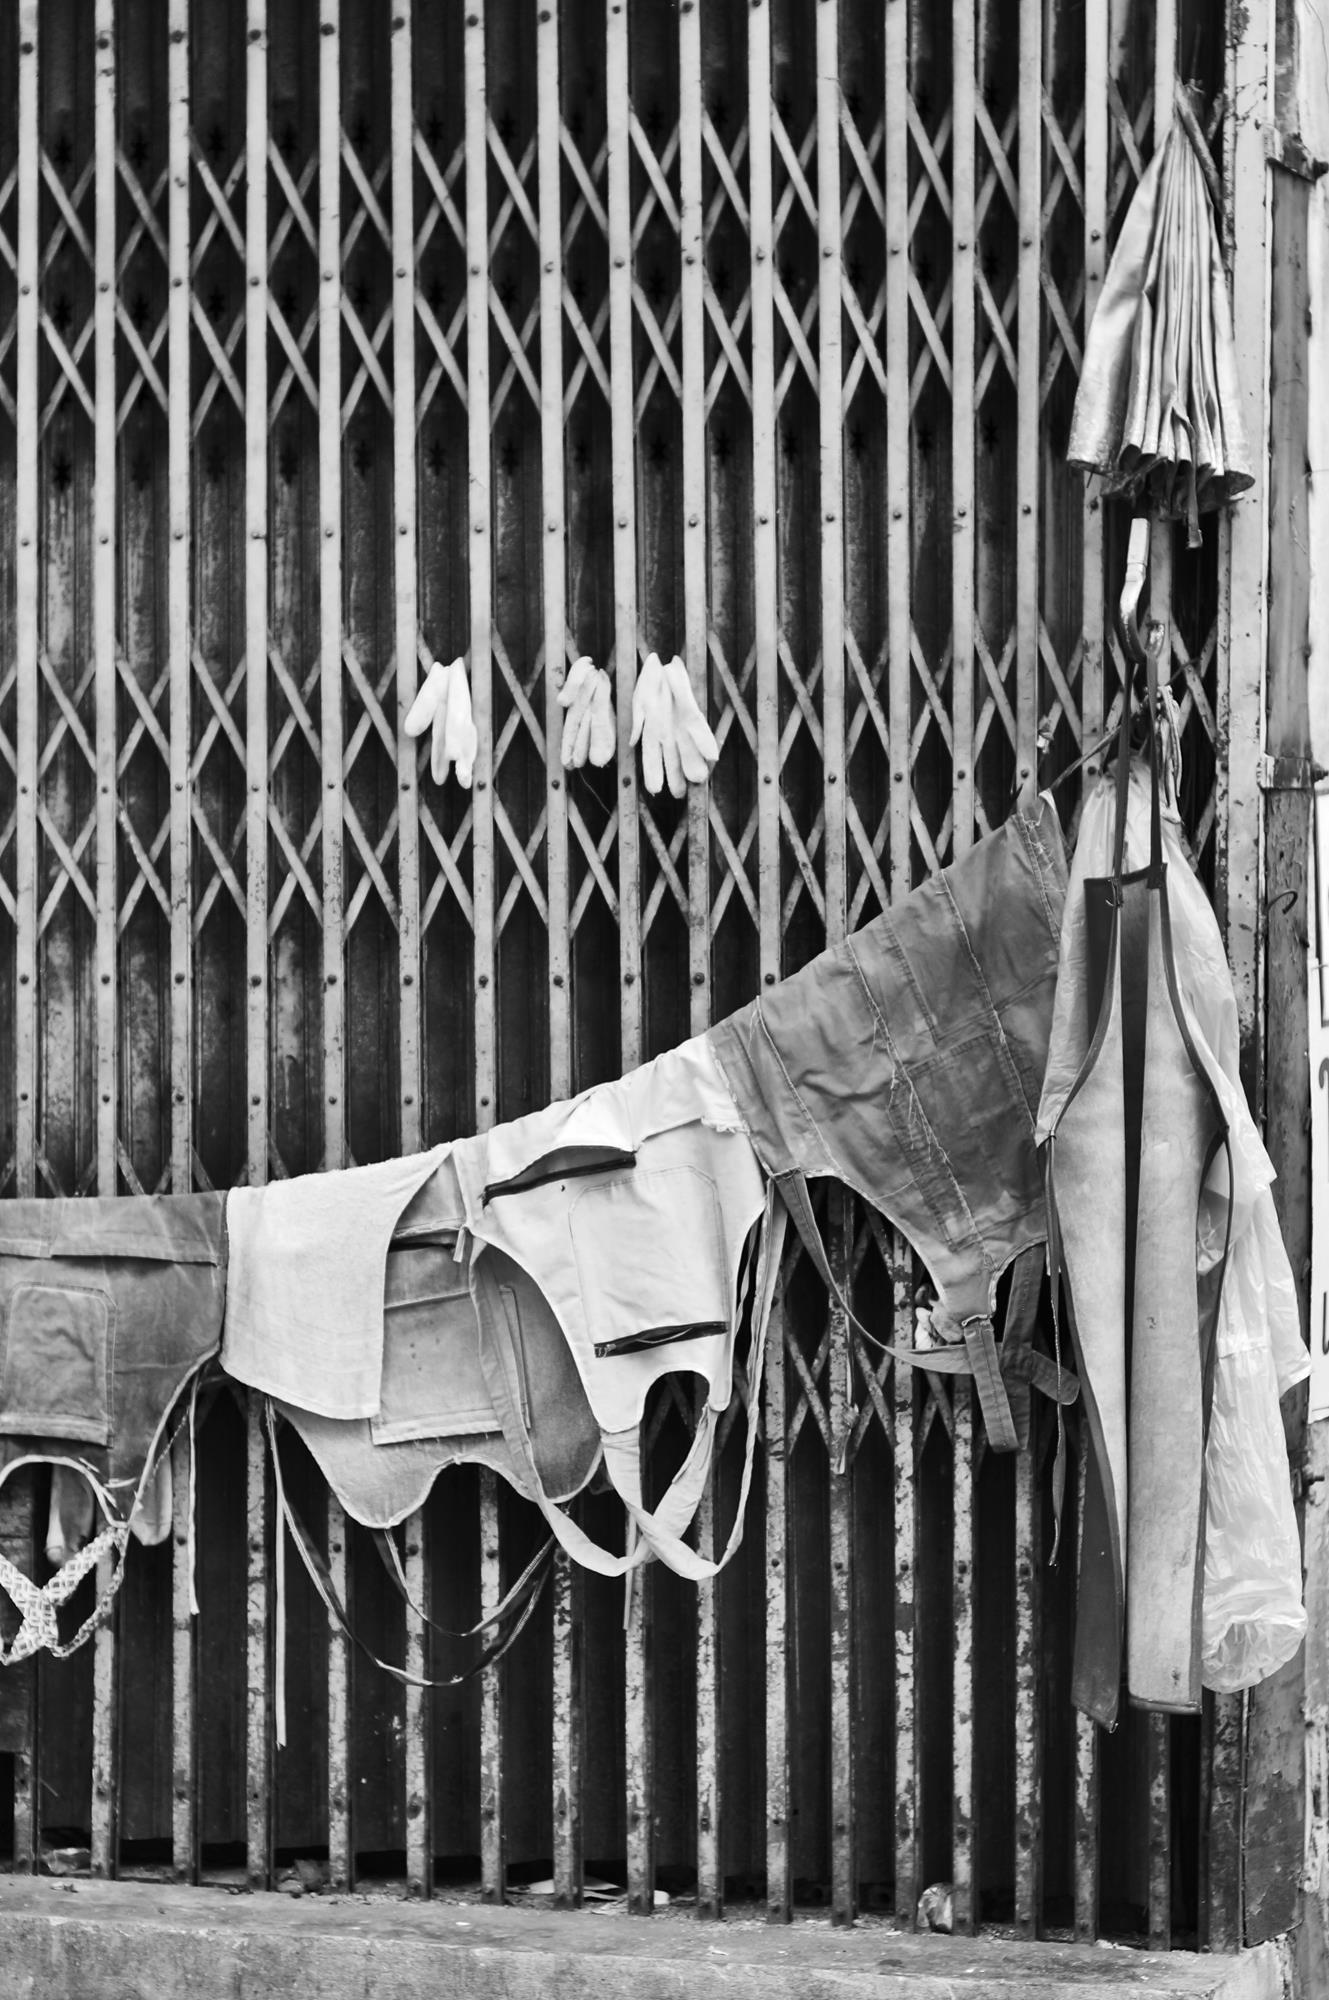 monochrome shot of work clothes drying